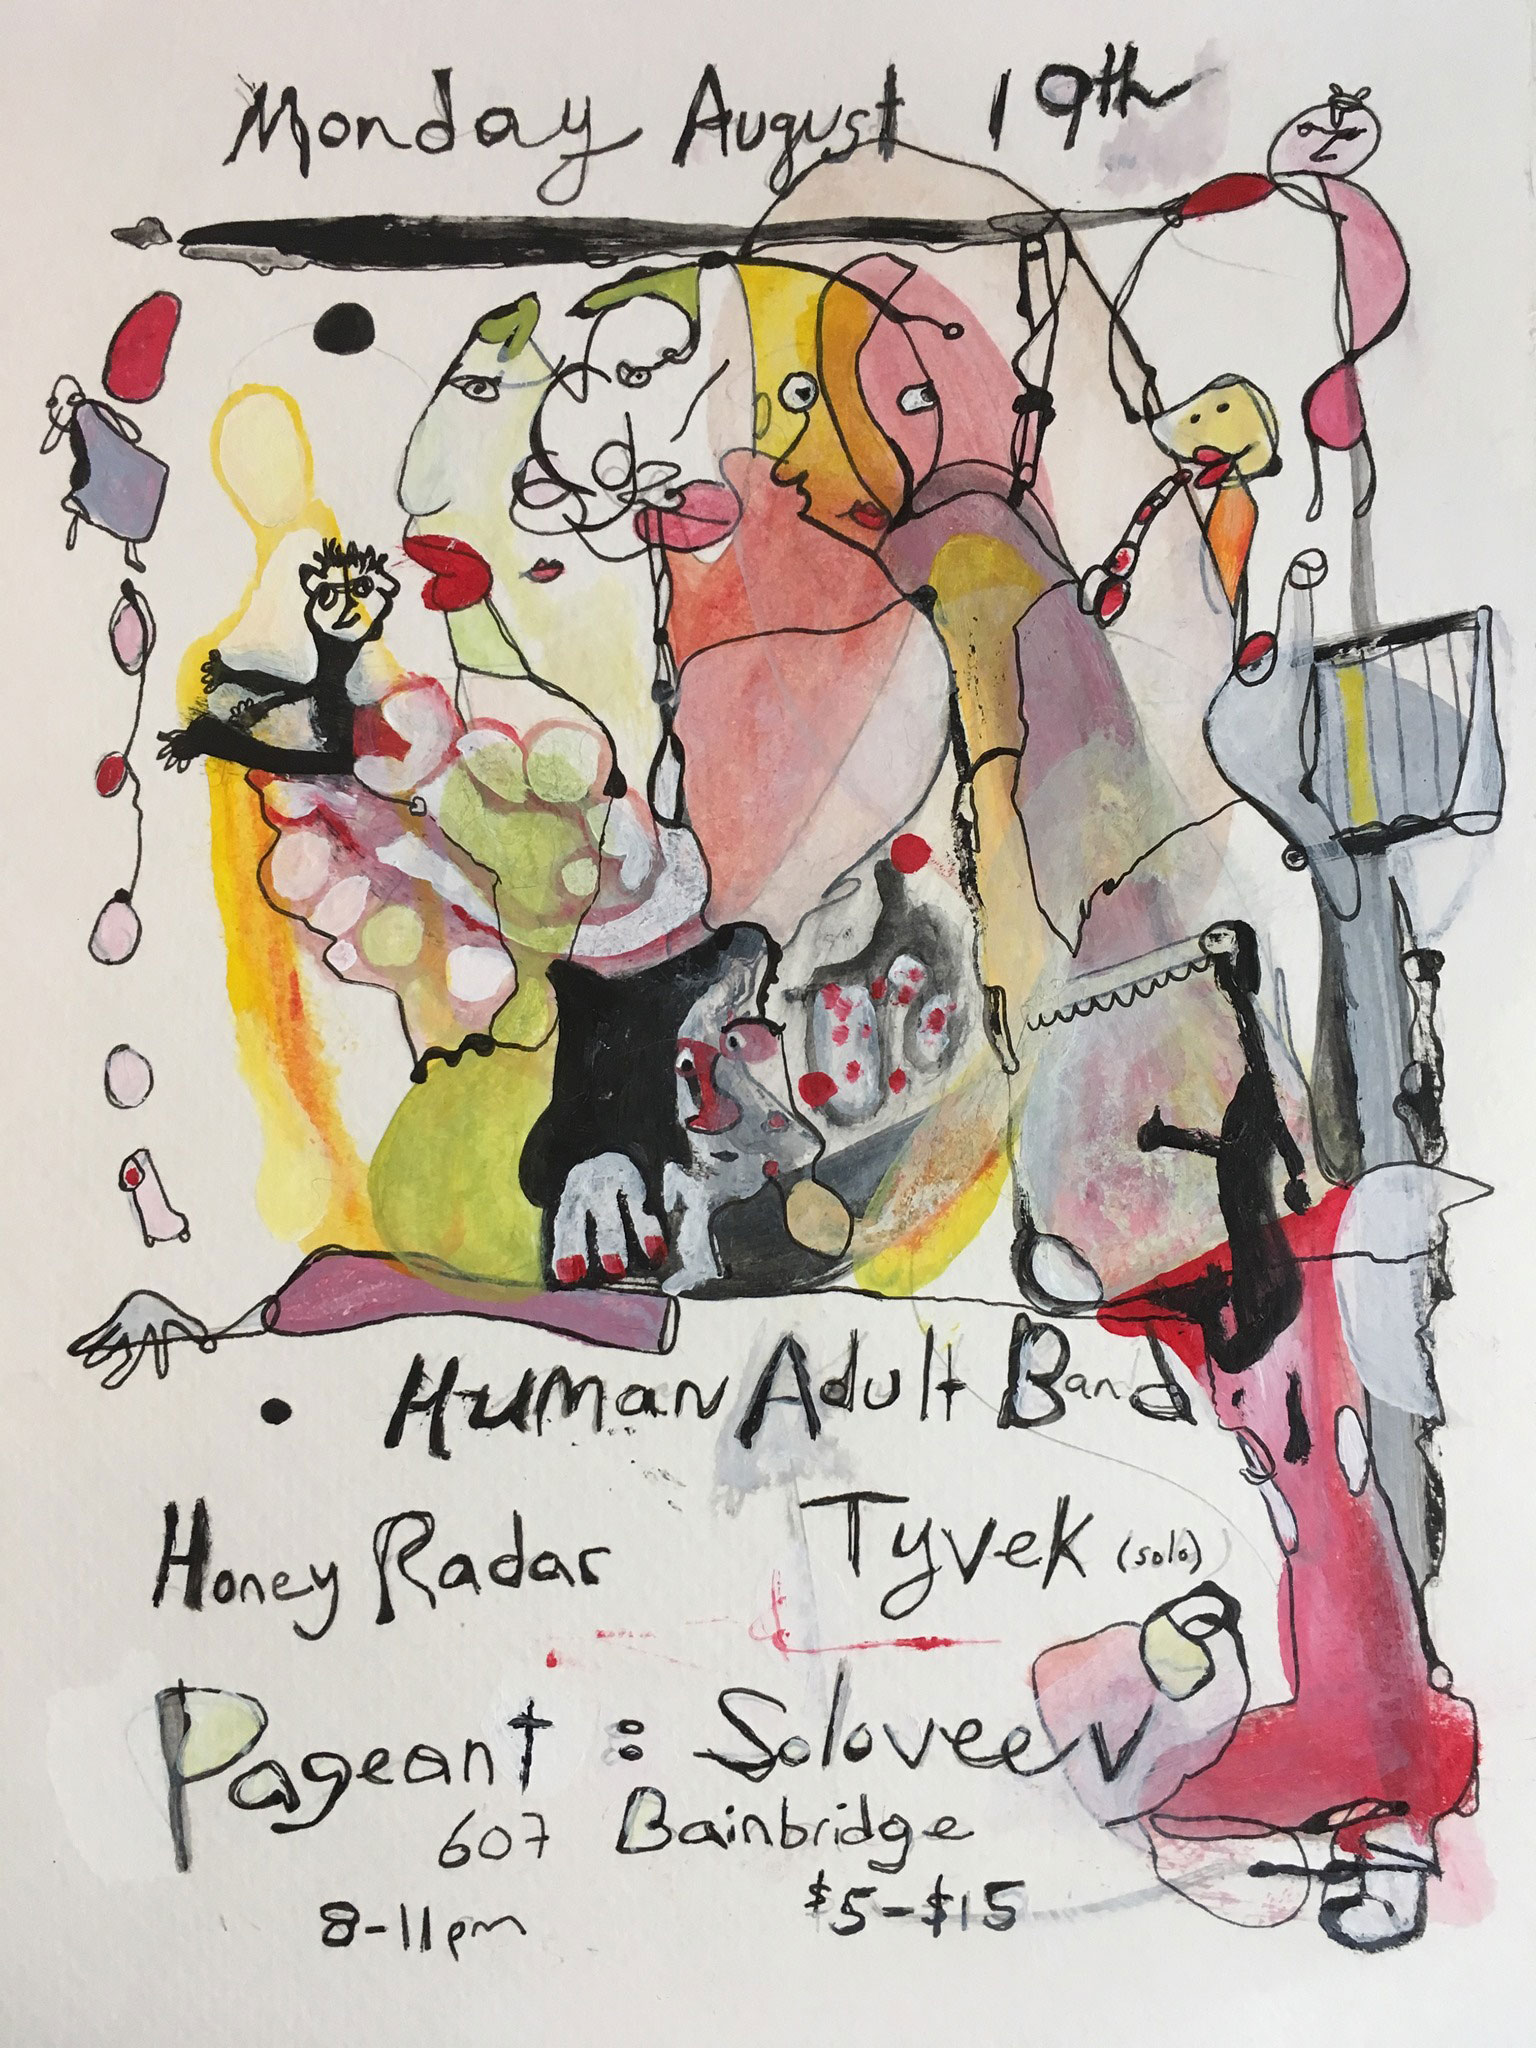 Human Adult Band / Honey Radar / Tyvek (solo)